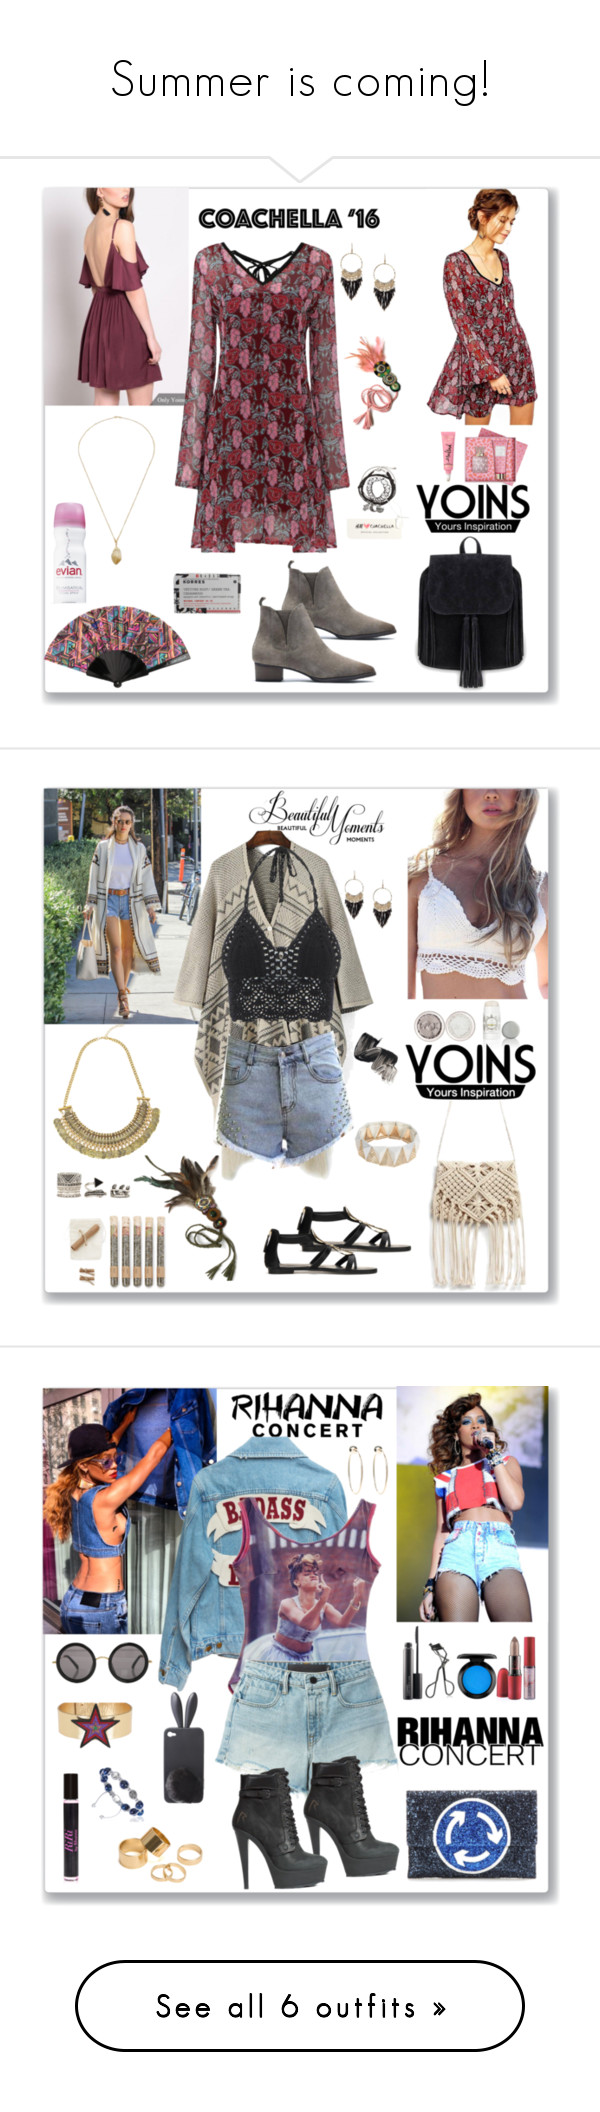 """""""Summer is coming!"""" by joachim-tracy ❤ liked on Polyvore featuring H&M, Vera Bradley, Korres, Evian, Truly Aesthetic, Forever 21, Lavanila, boho, bag and beige"""